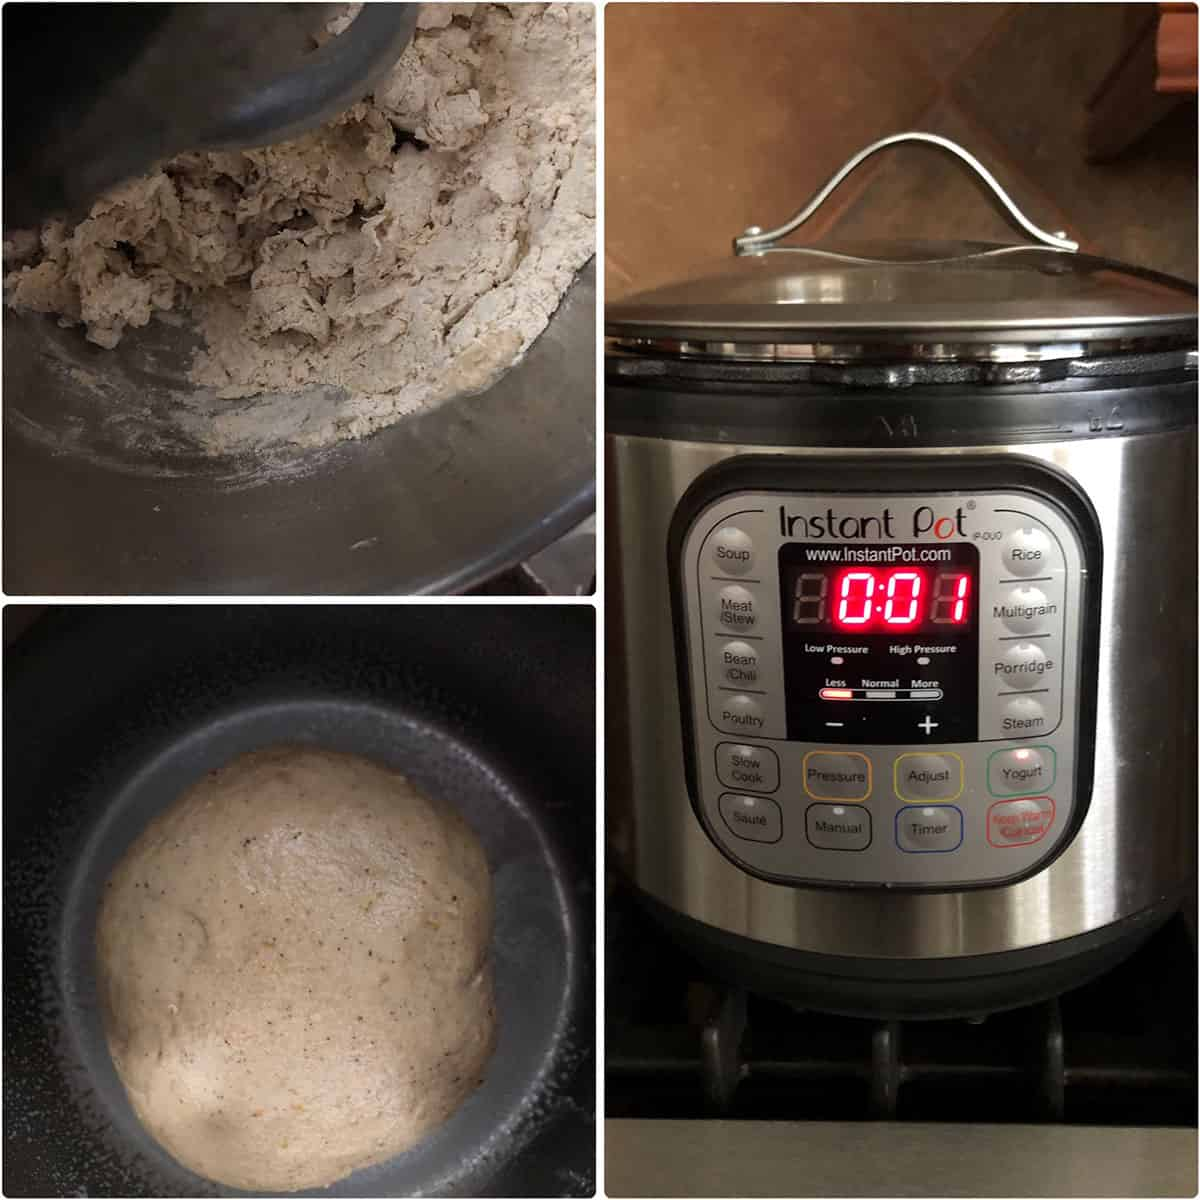 Flatbread Dough placed in an  Instant pot for proofing